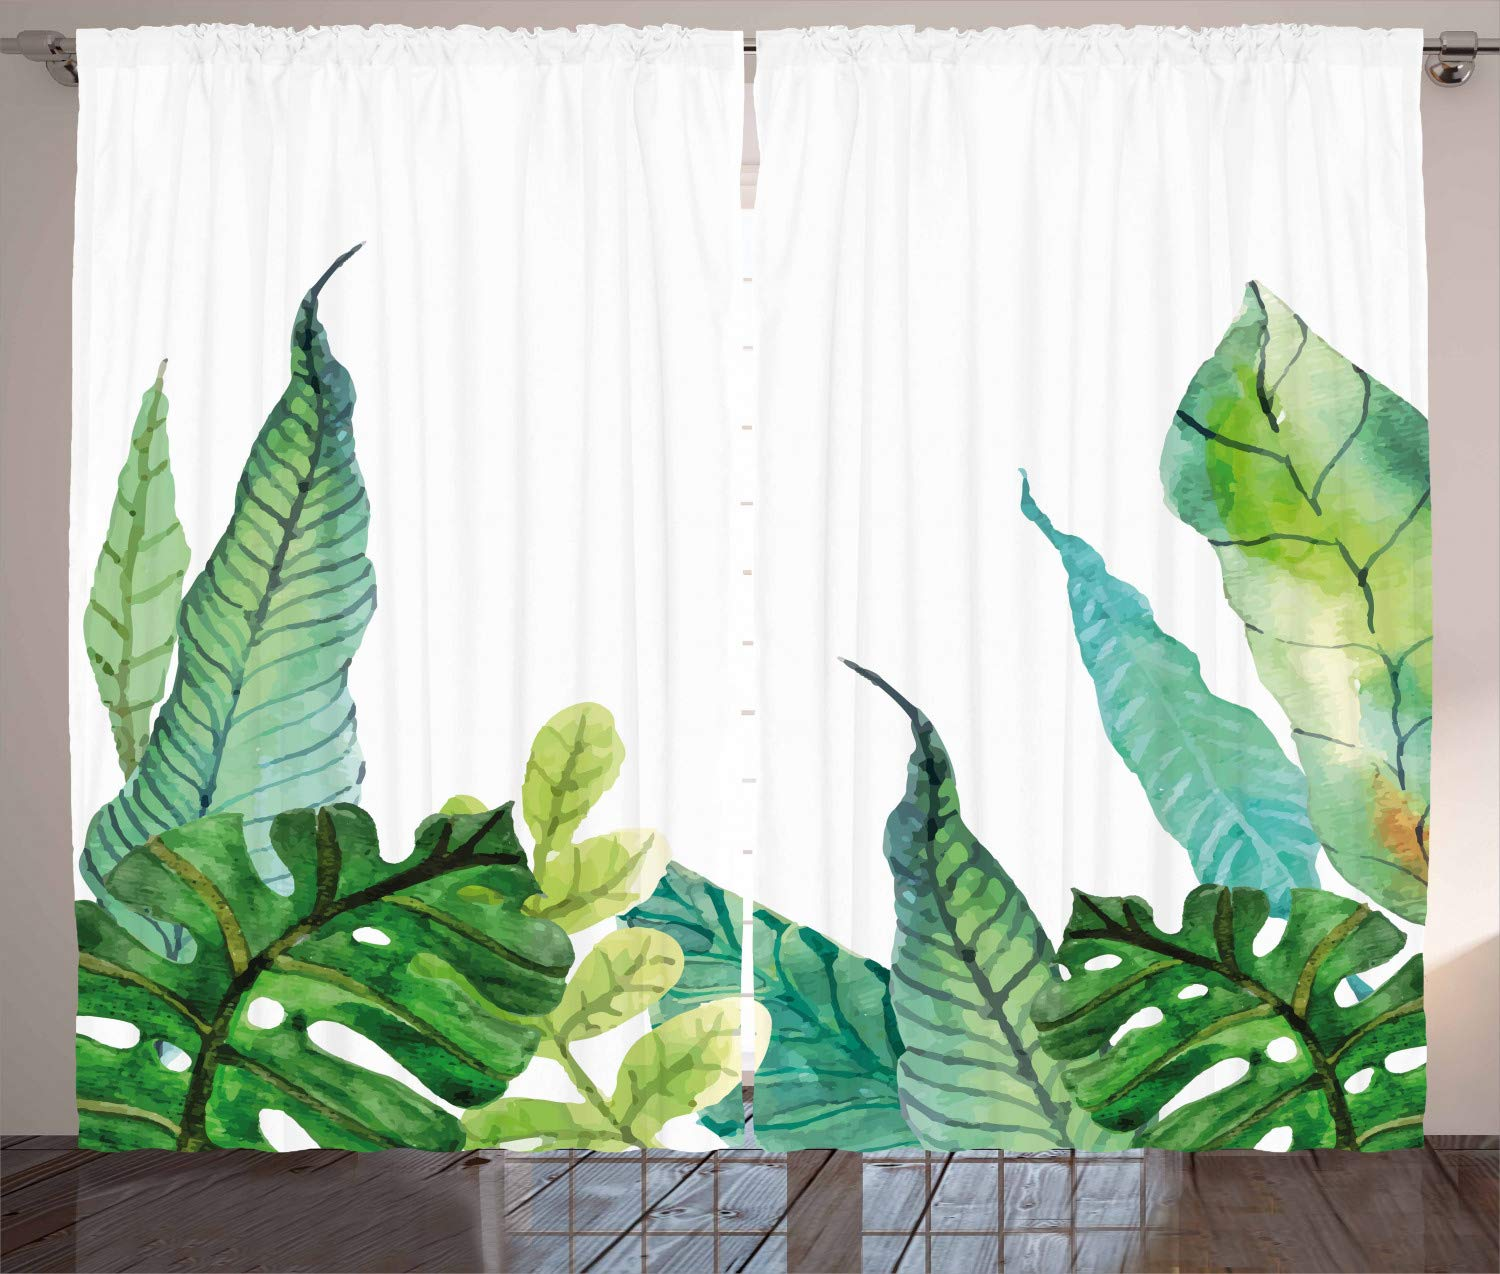 Surreal Morning Fog in Mist Forest Mountain Valley Habitat Themed Himalayan Print 108W X 84L Inches Living Room Bedroom Window Drapes 2 Panel Set Ambesonne Nature Decor Curtains by Blue p/_26233/_108x84